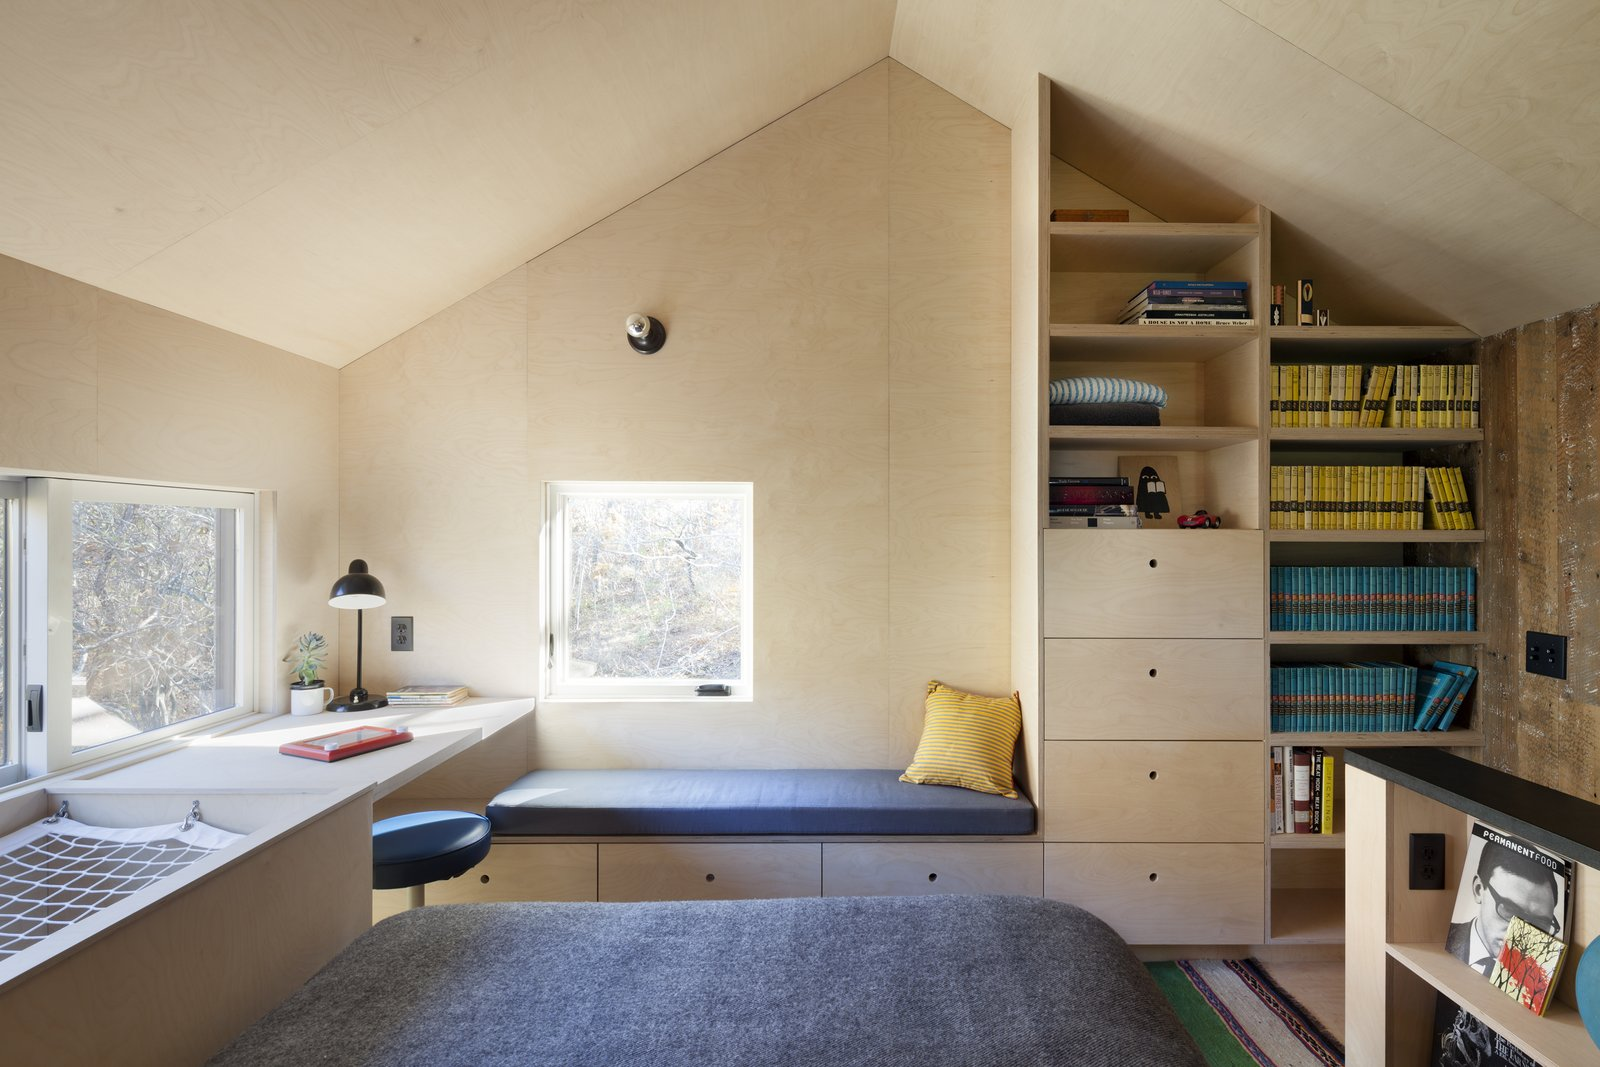 Bedroom, Plywood Floor, Bench, Bed, Shelves, and Wall Lighting The open bedroom at the second floor with built-in desk and shelving. The double height space at image left contains netting which supports the body, providing a spot for a floating perch above the entry.  Micro Cabin